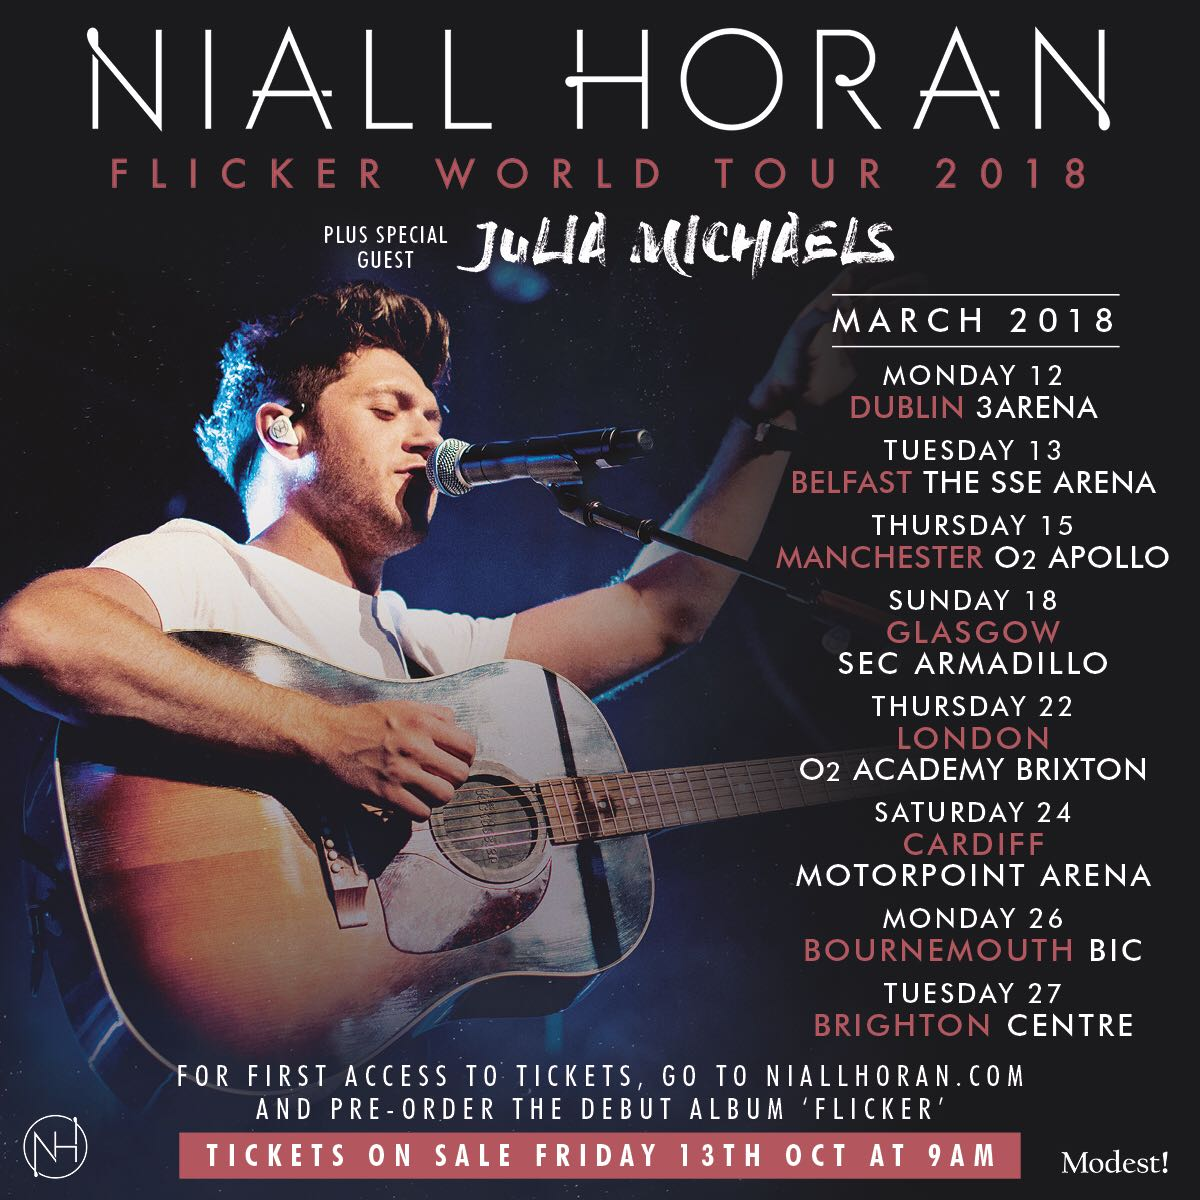 UK & Ireland, pre-order 'Flicker' from the official store to get pre-sale access ! https://t.co/tWzptqLLVa https://t.co/LXICOWvY7x